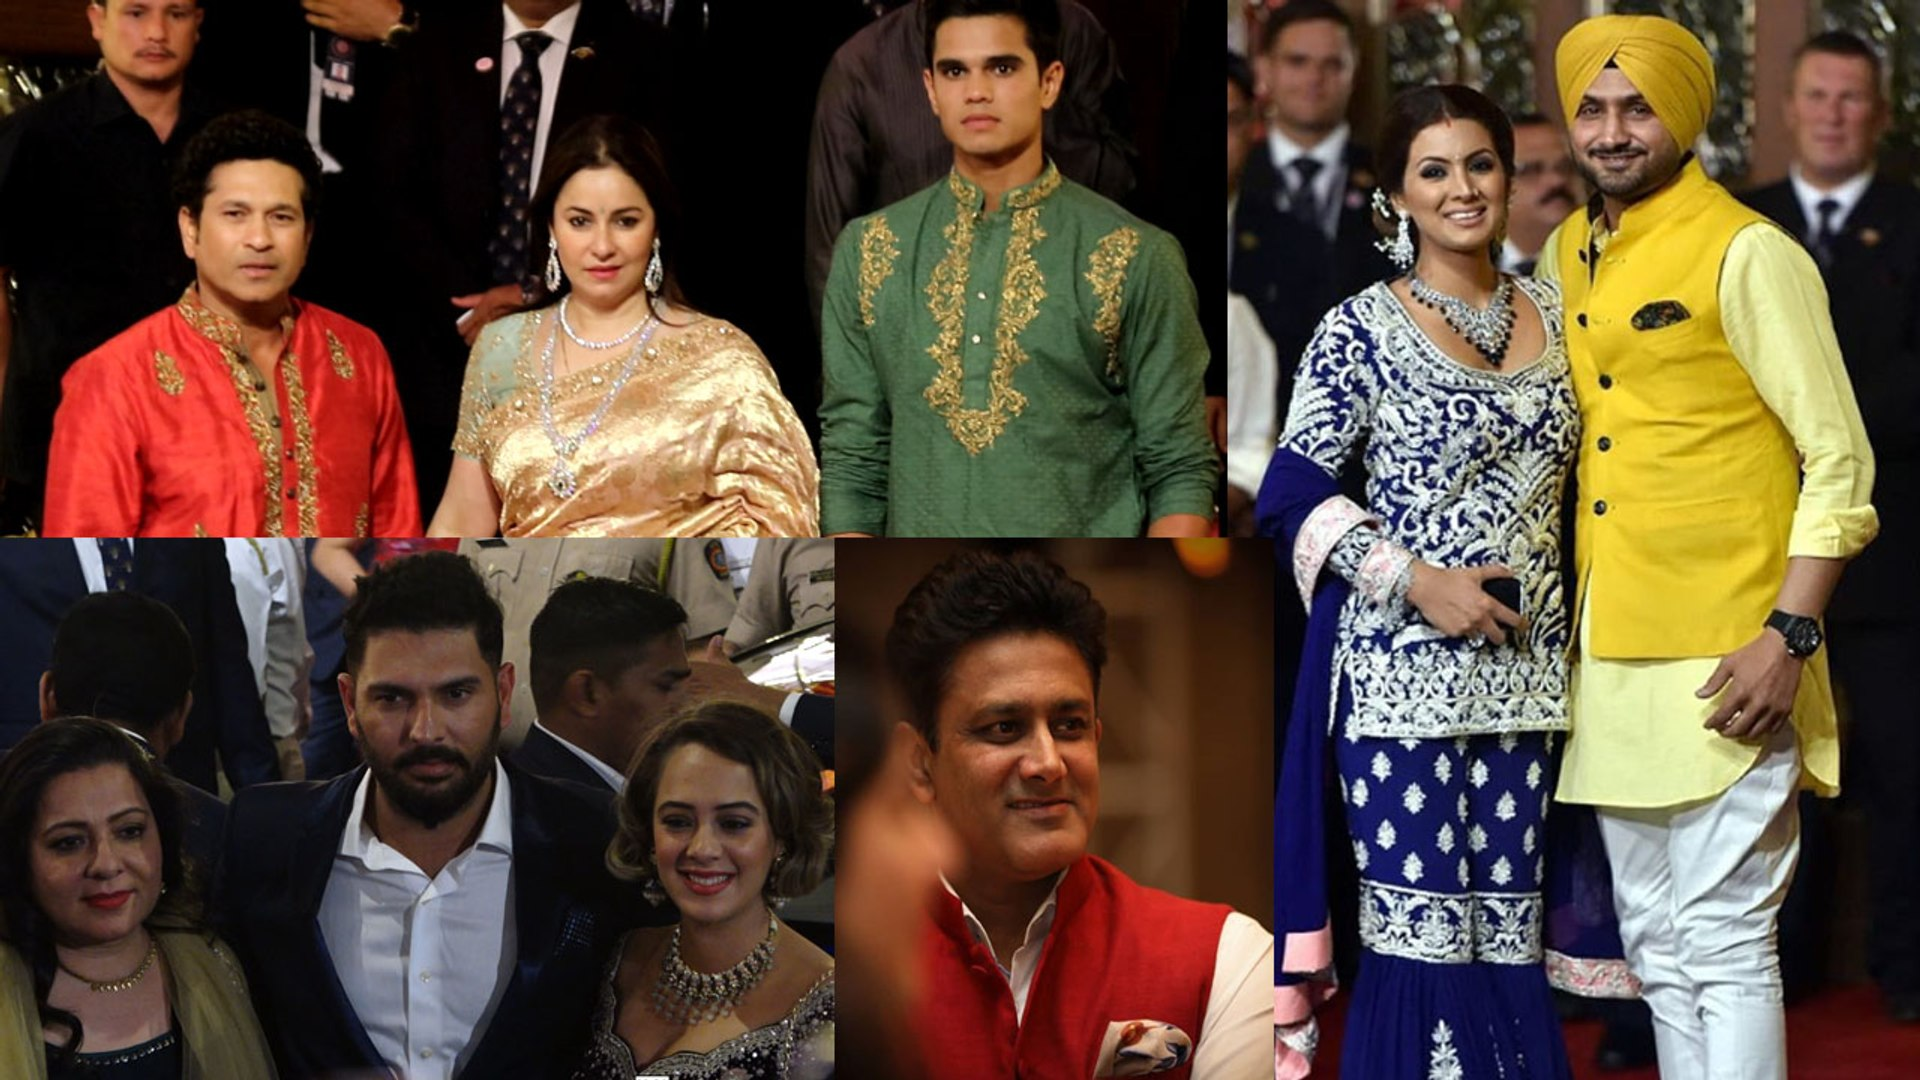 Isha Ambani Wedding: Sachin Tendulkar, Yuvraj Singh & other sports stars who arrived | Filmibeat